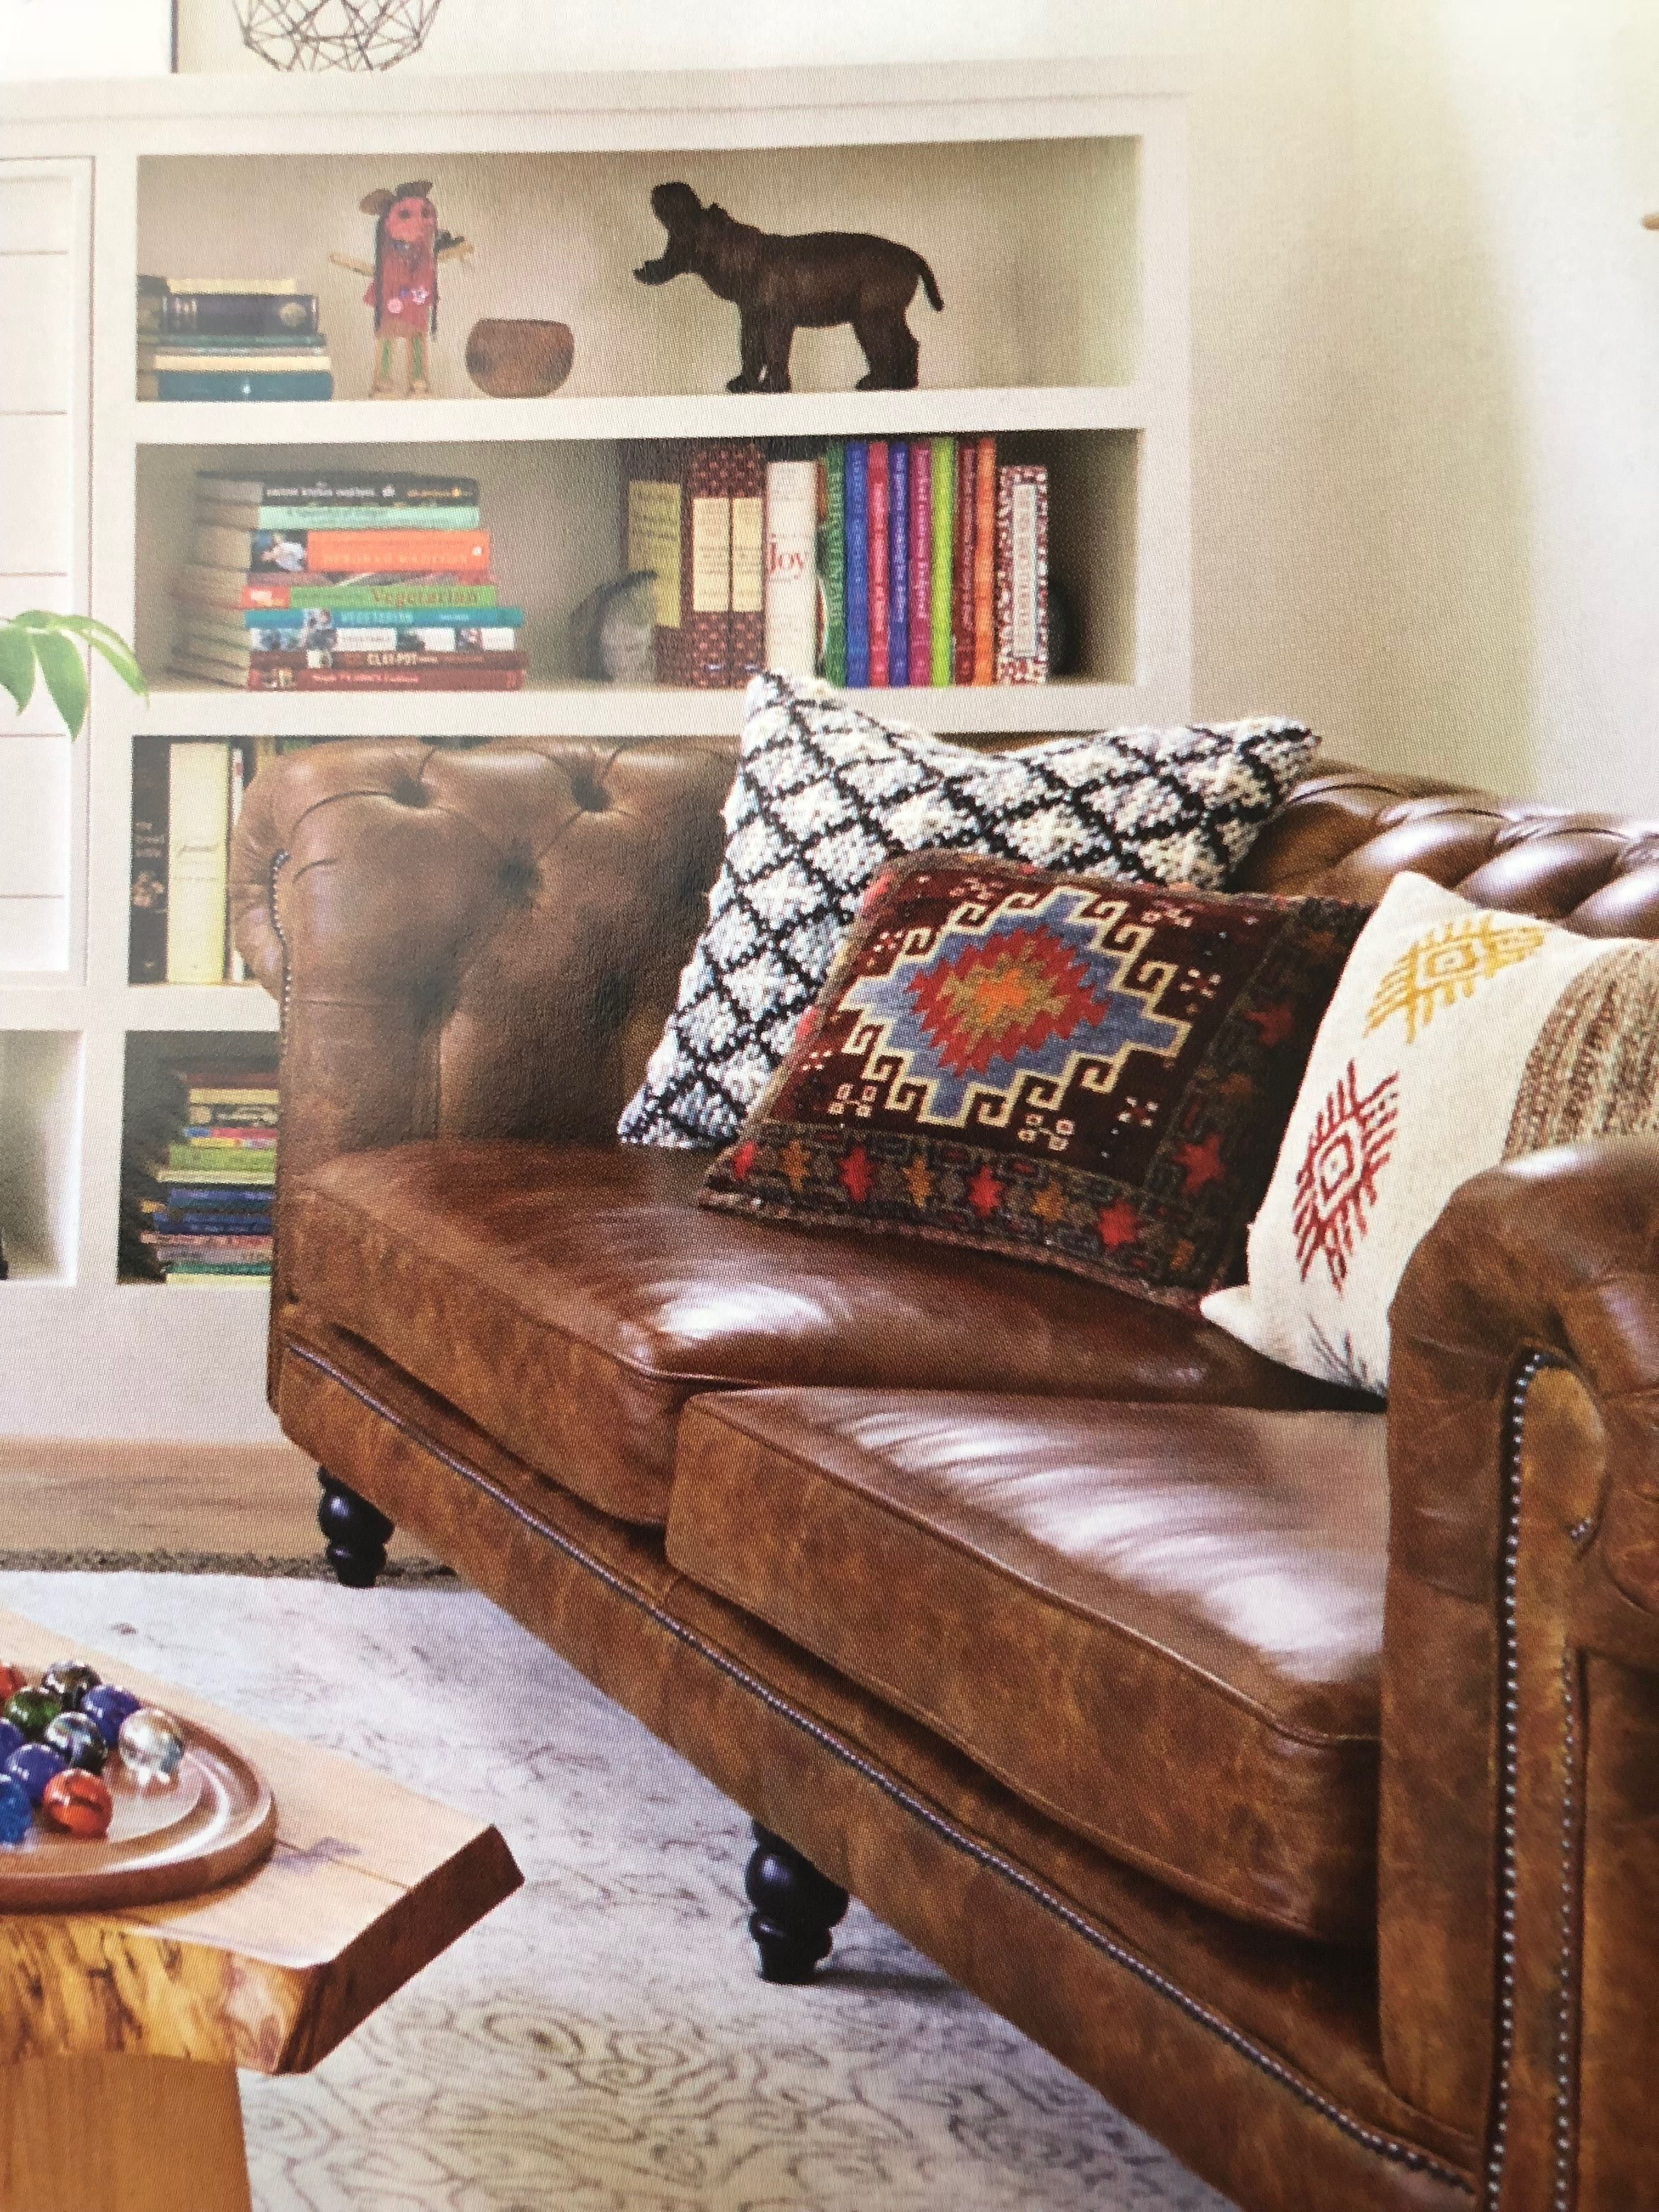 Inspiration For Reading Nook By Fireplace Pillows, Leather Chair And